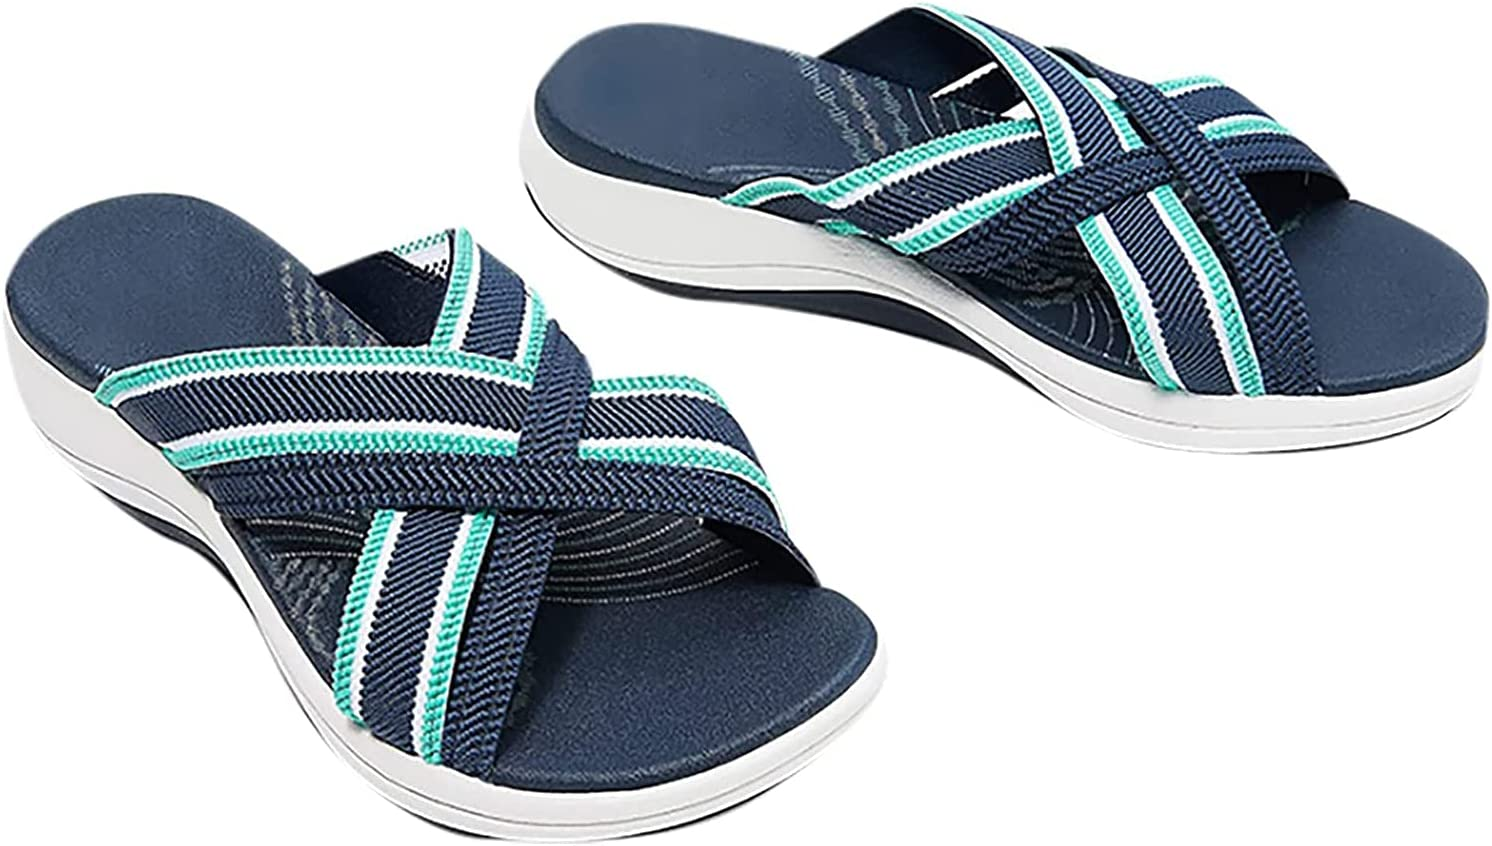 FURPO Product up-Gradation-Stretch Cross Orthotic Slide Sandals Suitable for Women